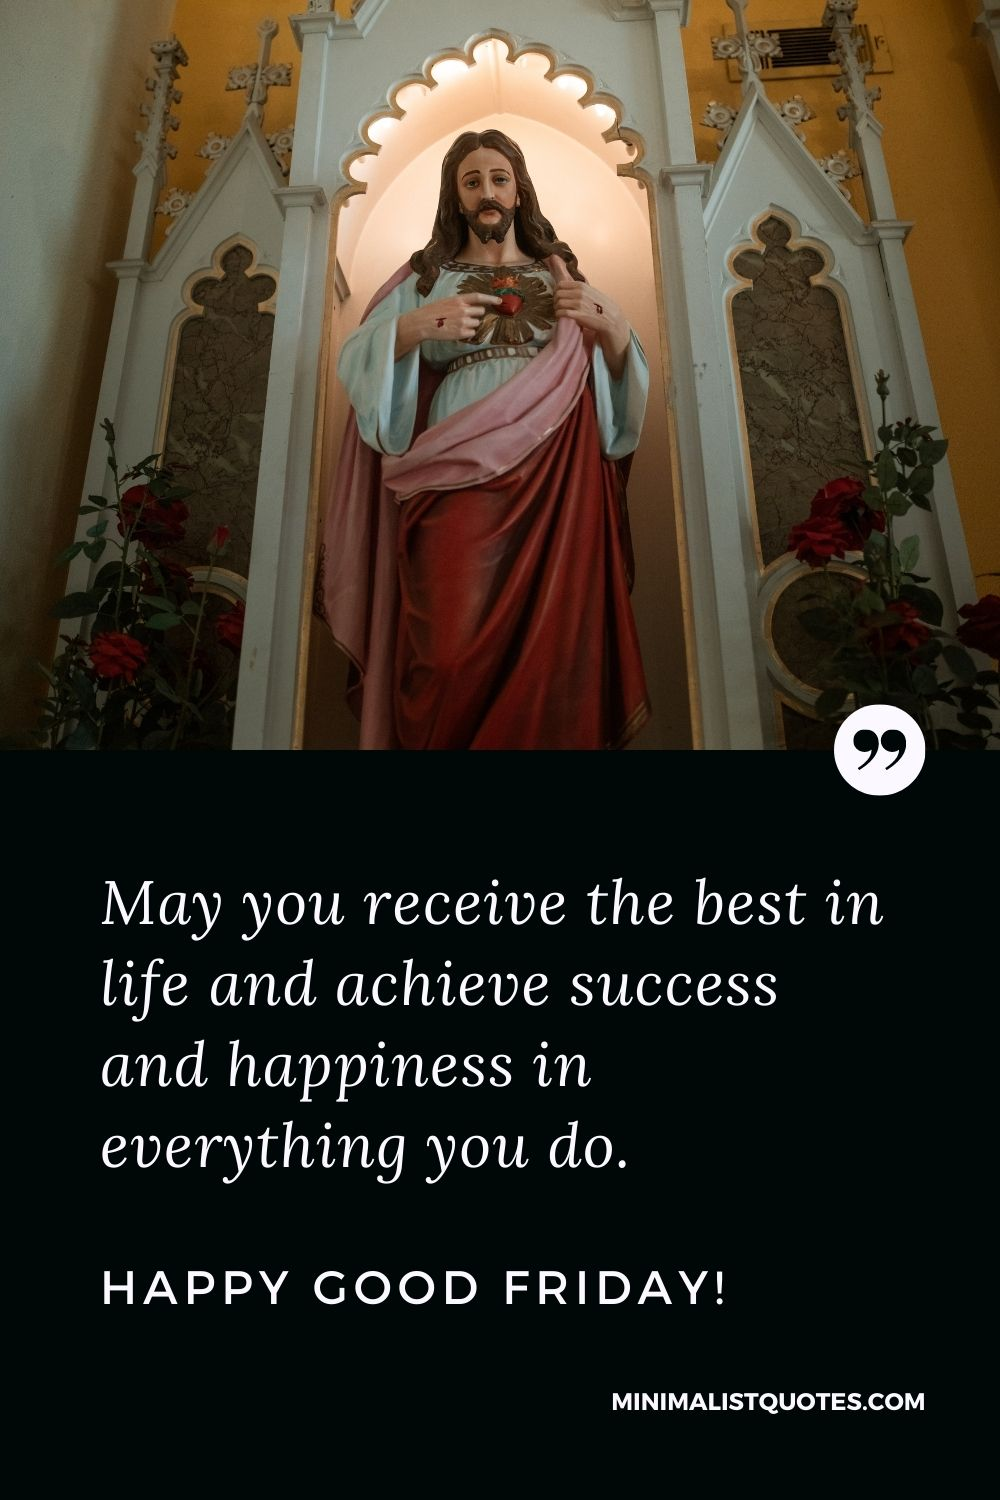 Good Friday wish, quote & message with image: May you receive the best in life and achieve success and happiness in everything you do. Happy Good Friday!